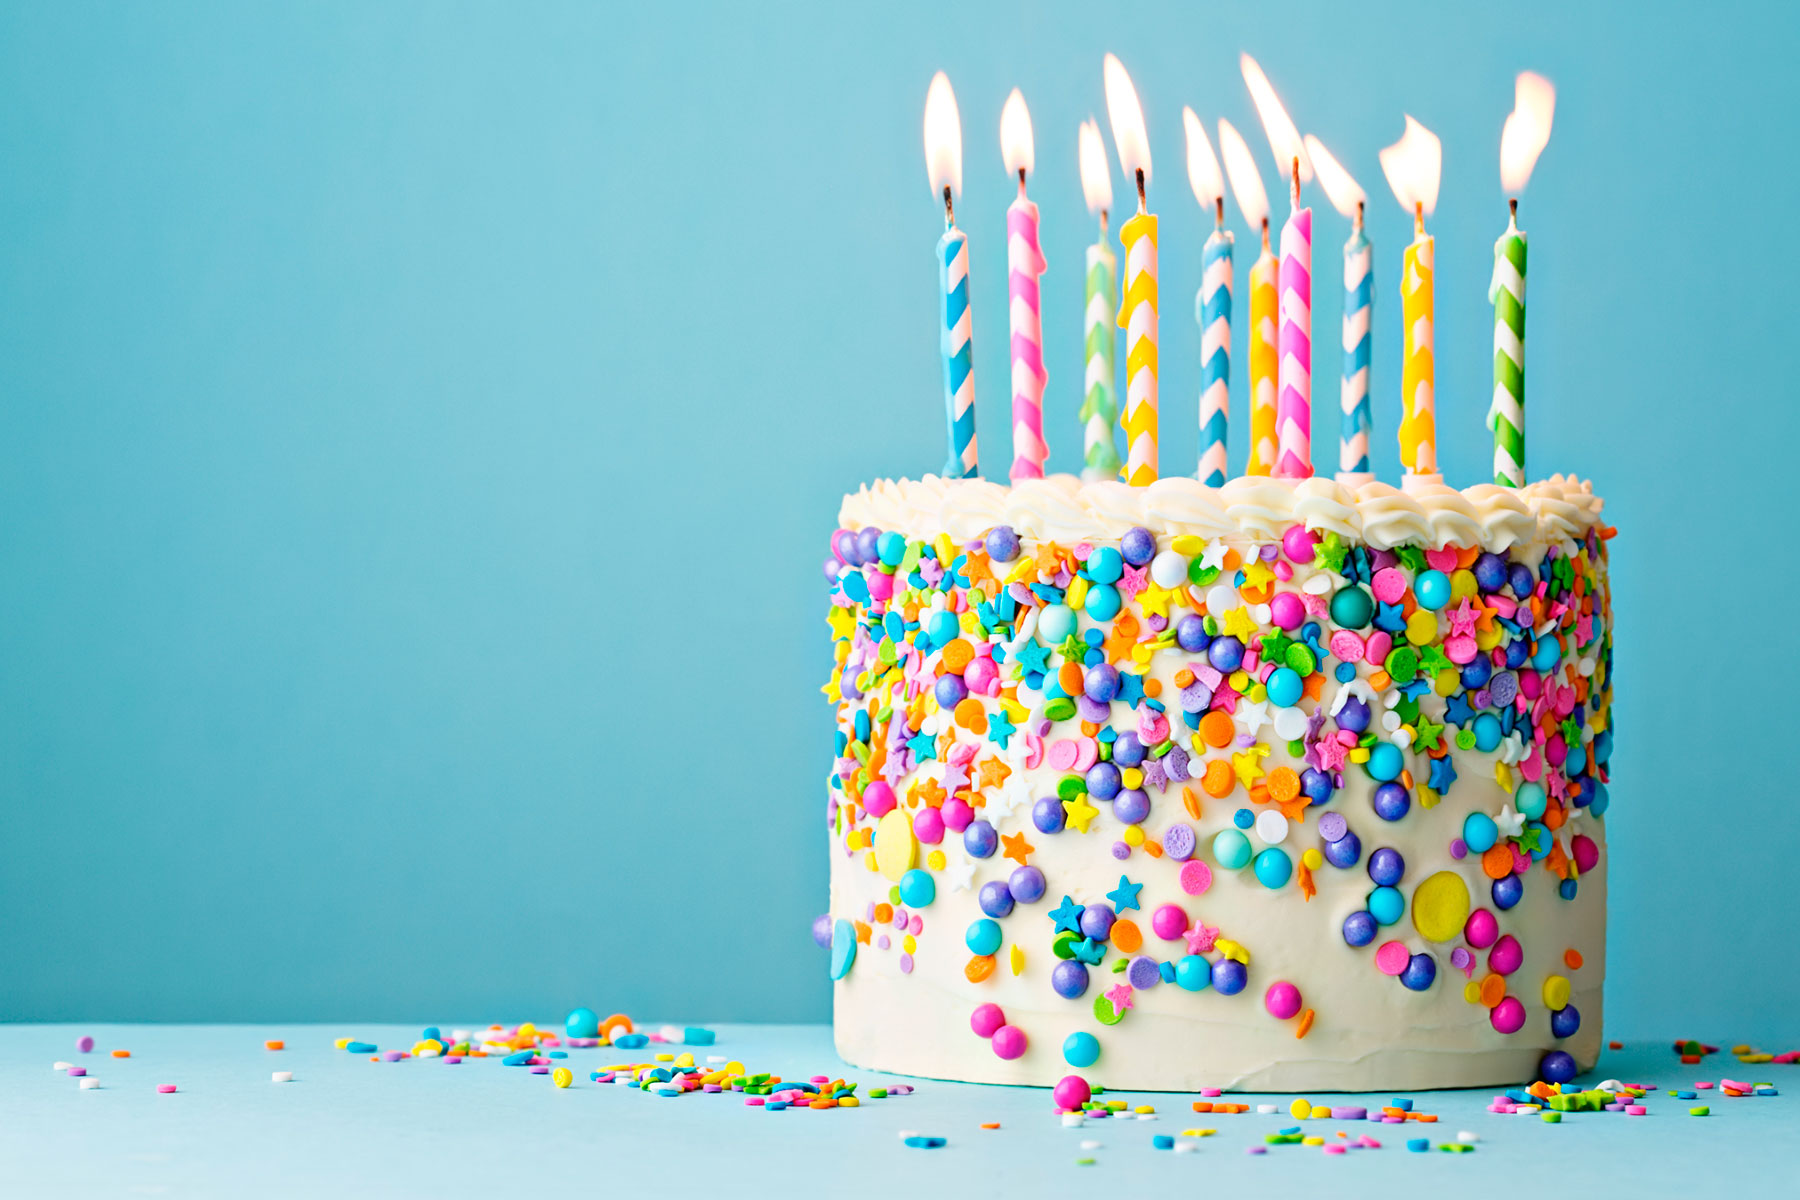 We're ten years old: leading the field in decoding complex, non-human genomes